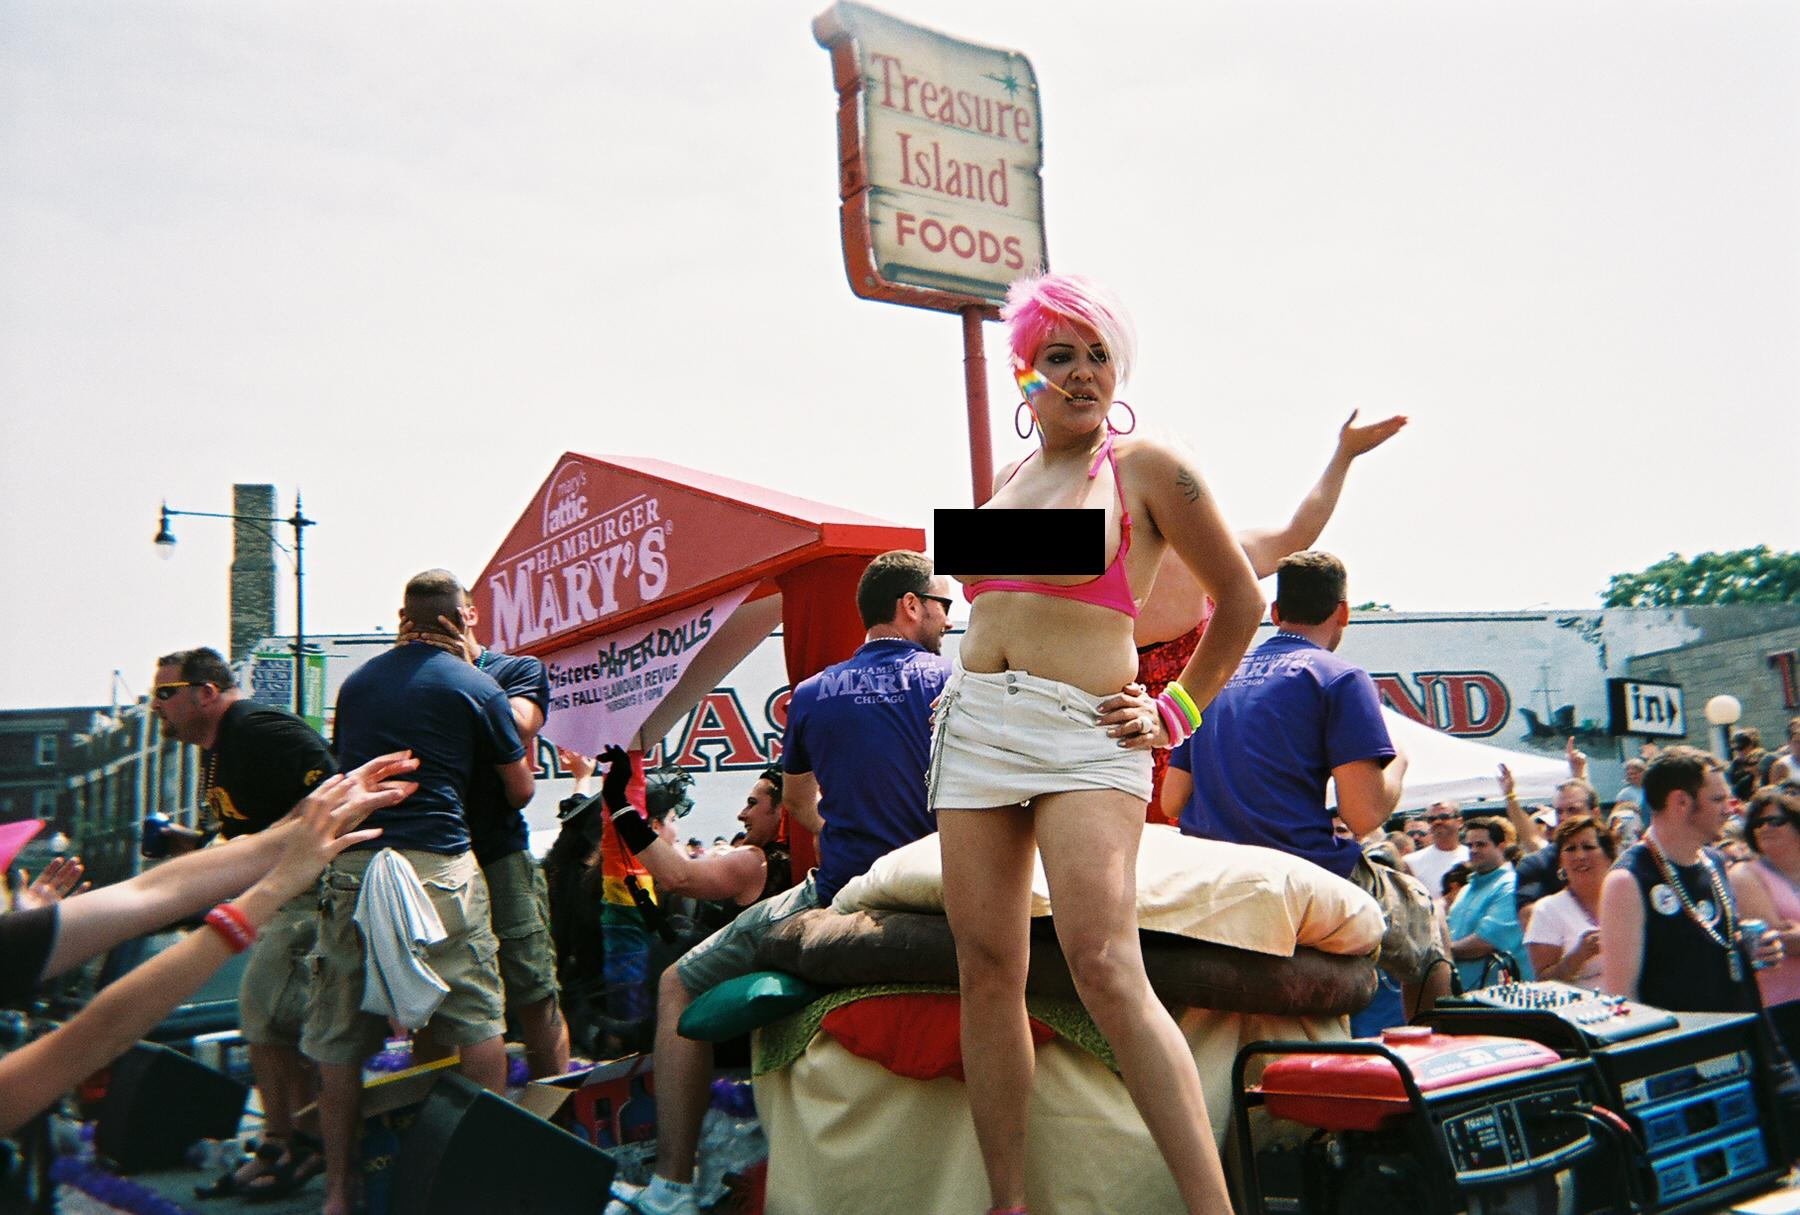 chicago_topless_transsexual_2007.JPG